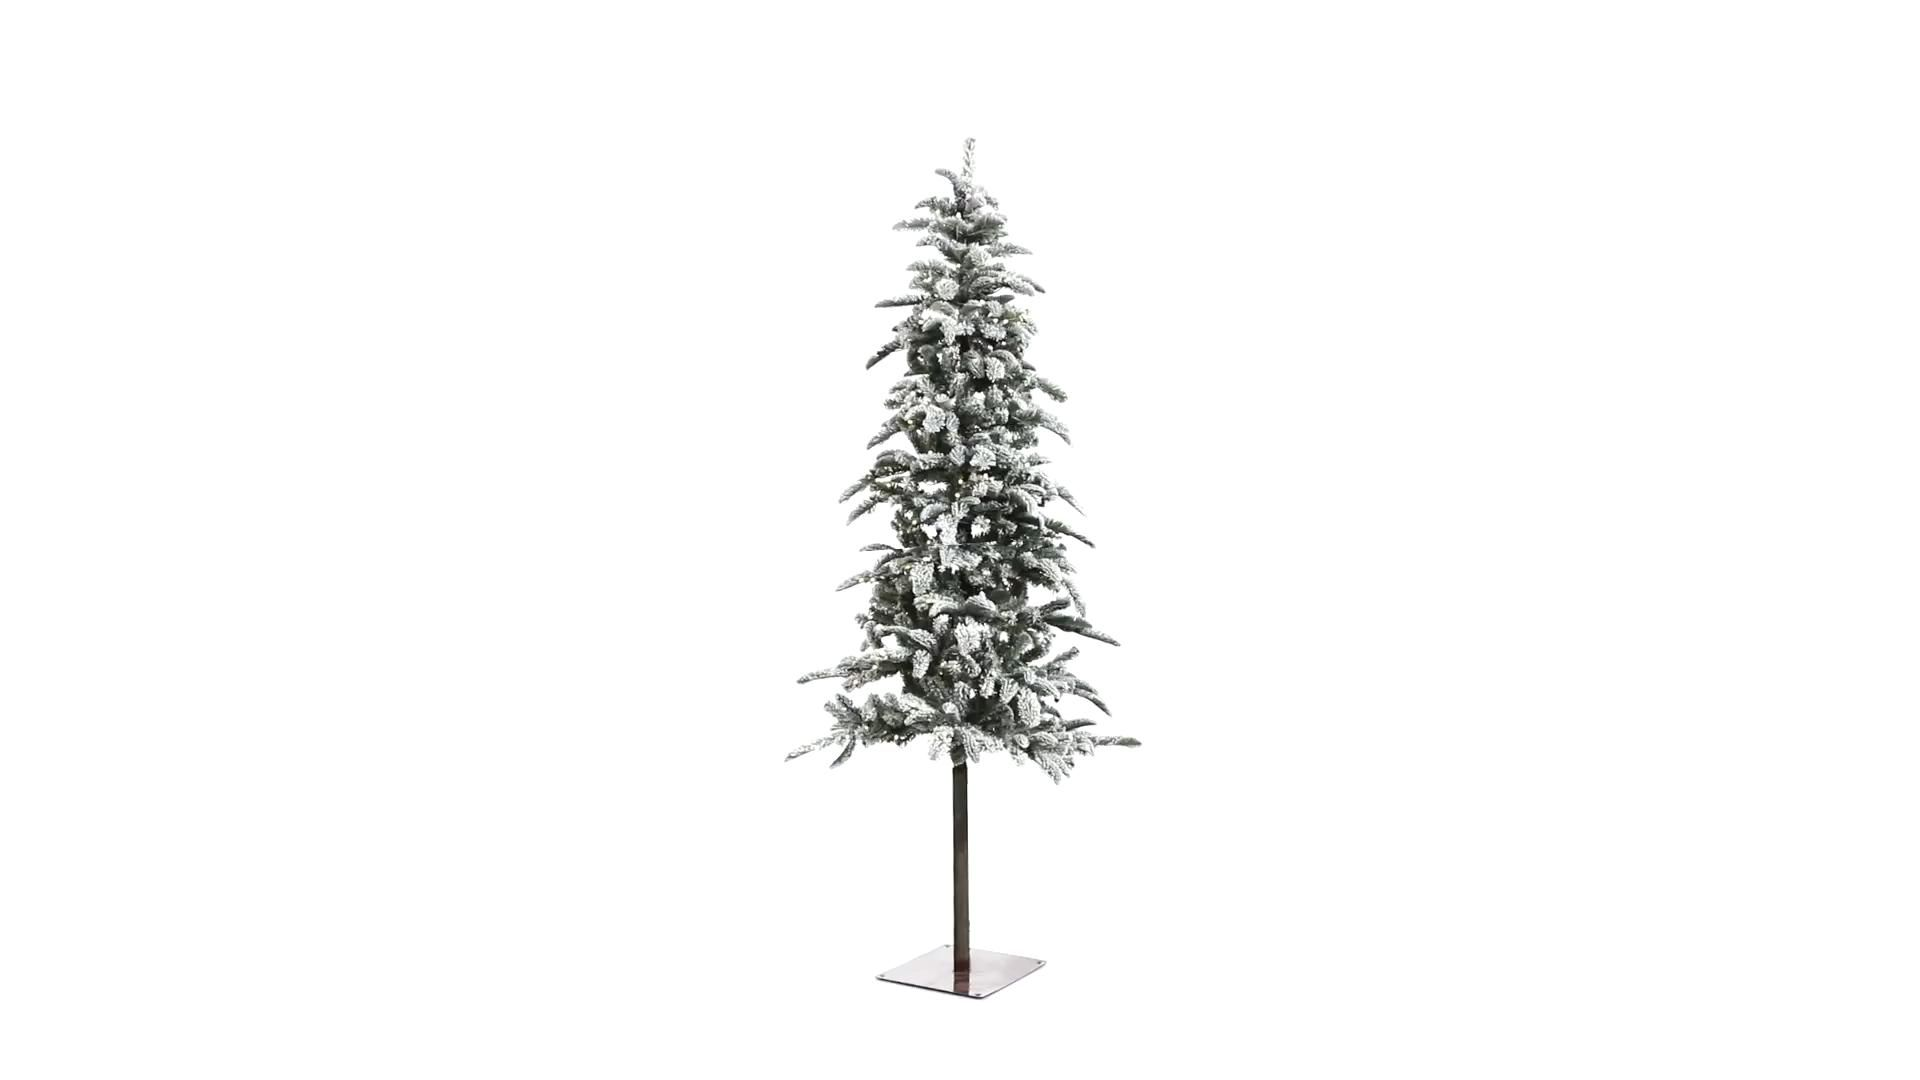 Create your own winter wonderland this holiday season with the help of this flocked Washington Alpine artificial Christmas tree. Easy and stress-free, this artificial Christmas tree boasts various tiers of evergreen foliage made up of 637 easy-to-bend branches, perfect for showcasing all your favorite holiday accents and finished with a light dusting of faux snow to evoke the ultimate winter setting. Arriving pre-strung with 250 LED lights to eliminate tangles